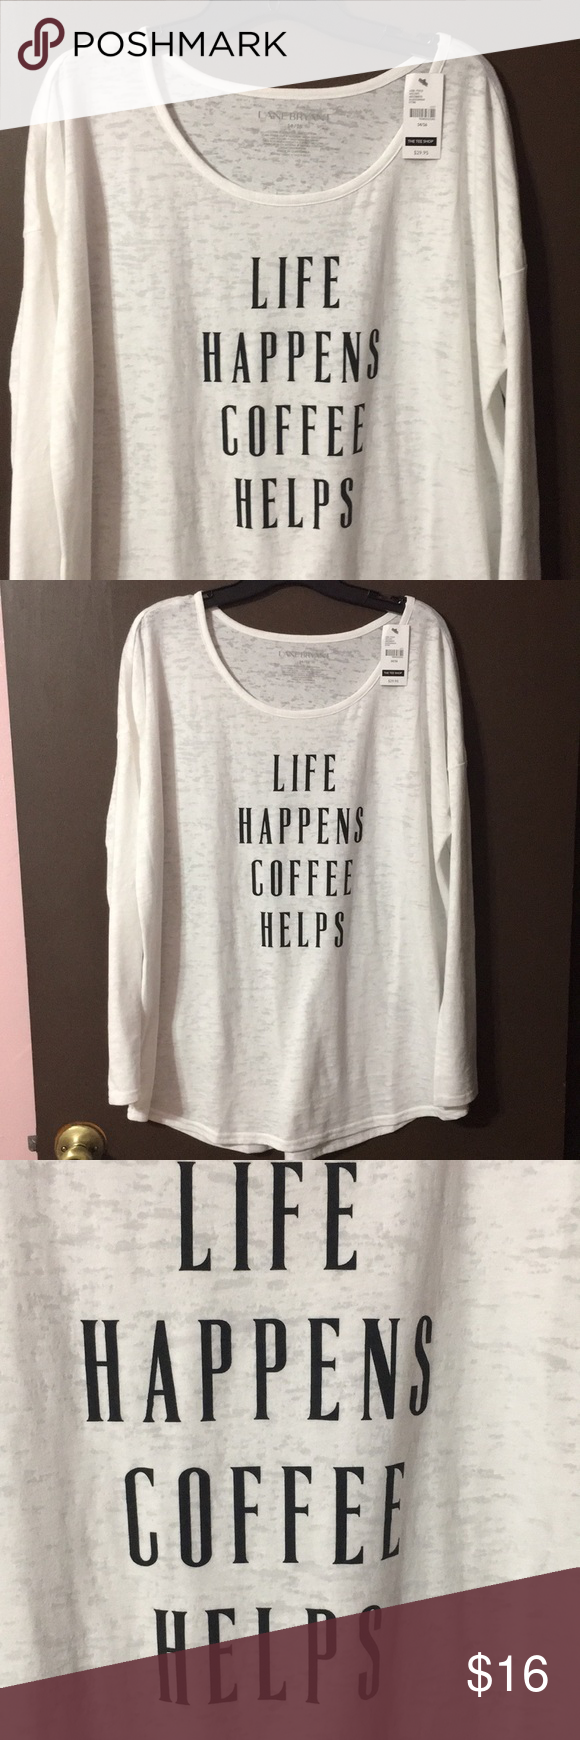 NWT Lane Bryant tee NWT Lane Bryant long sleeve white tee. Scoop neck says life happens coffee helps! Size 14/16 Lane Bryant Tops